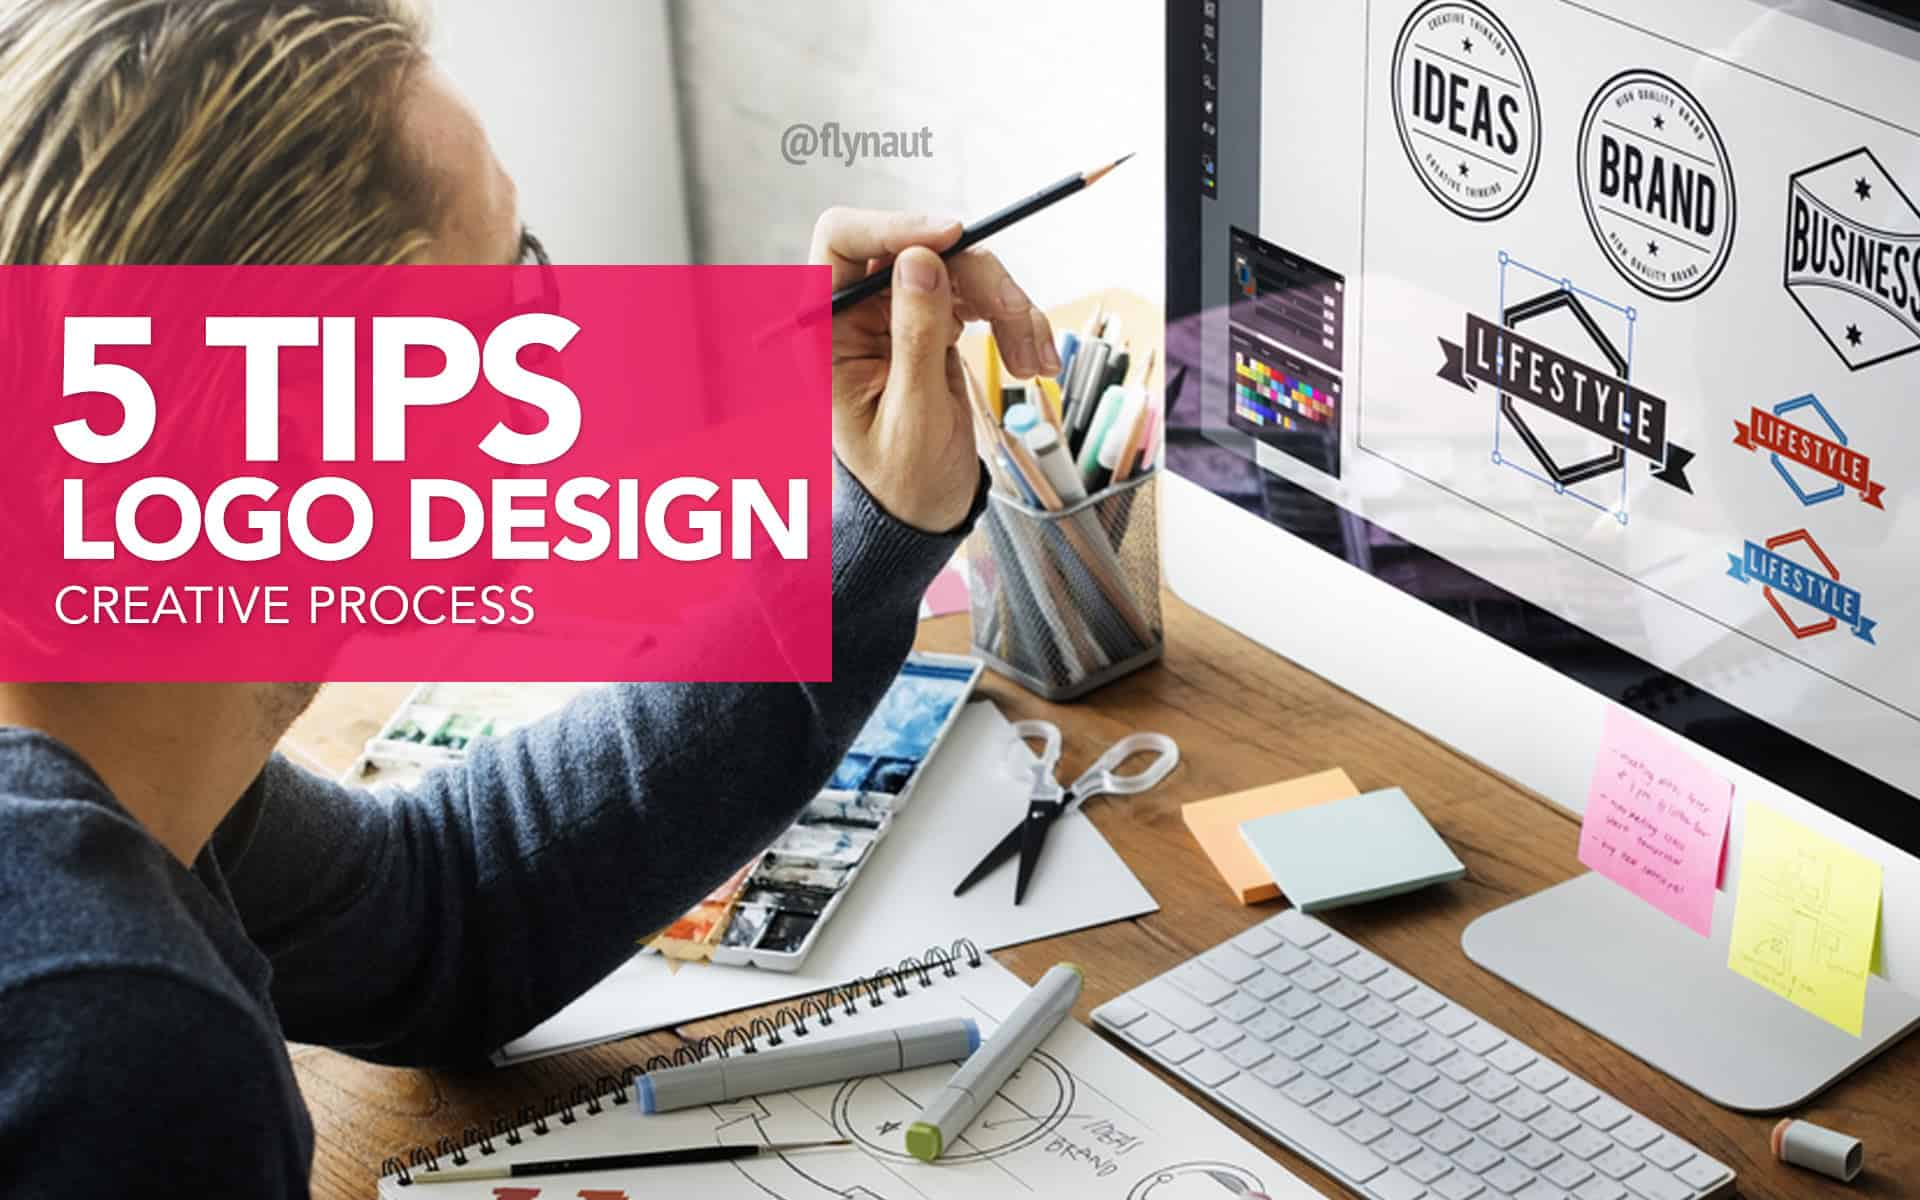 Top 5 Tips to make your logo design process a creative success